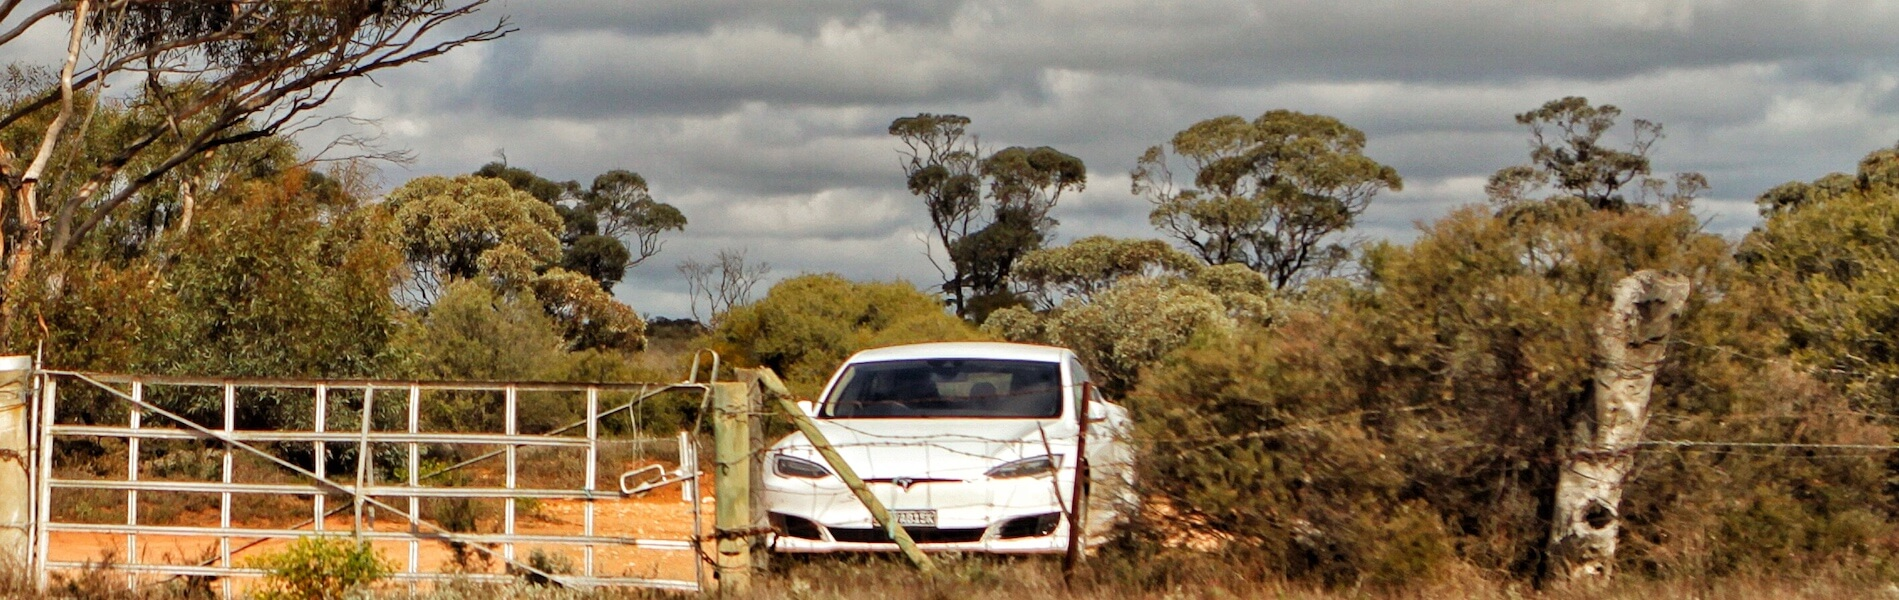 Tesla Owners Club of Australia - Outback